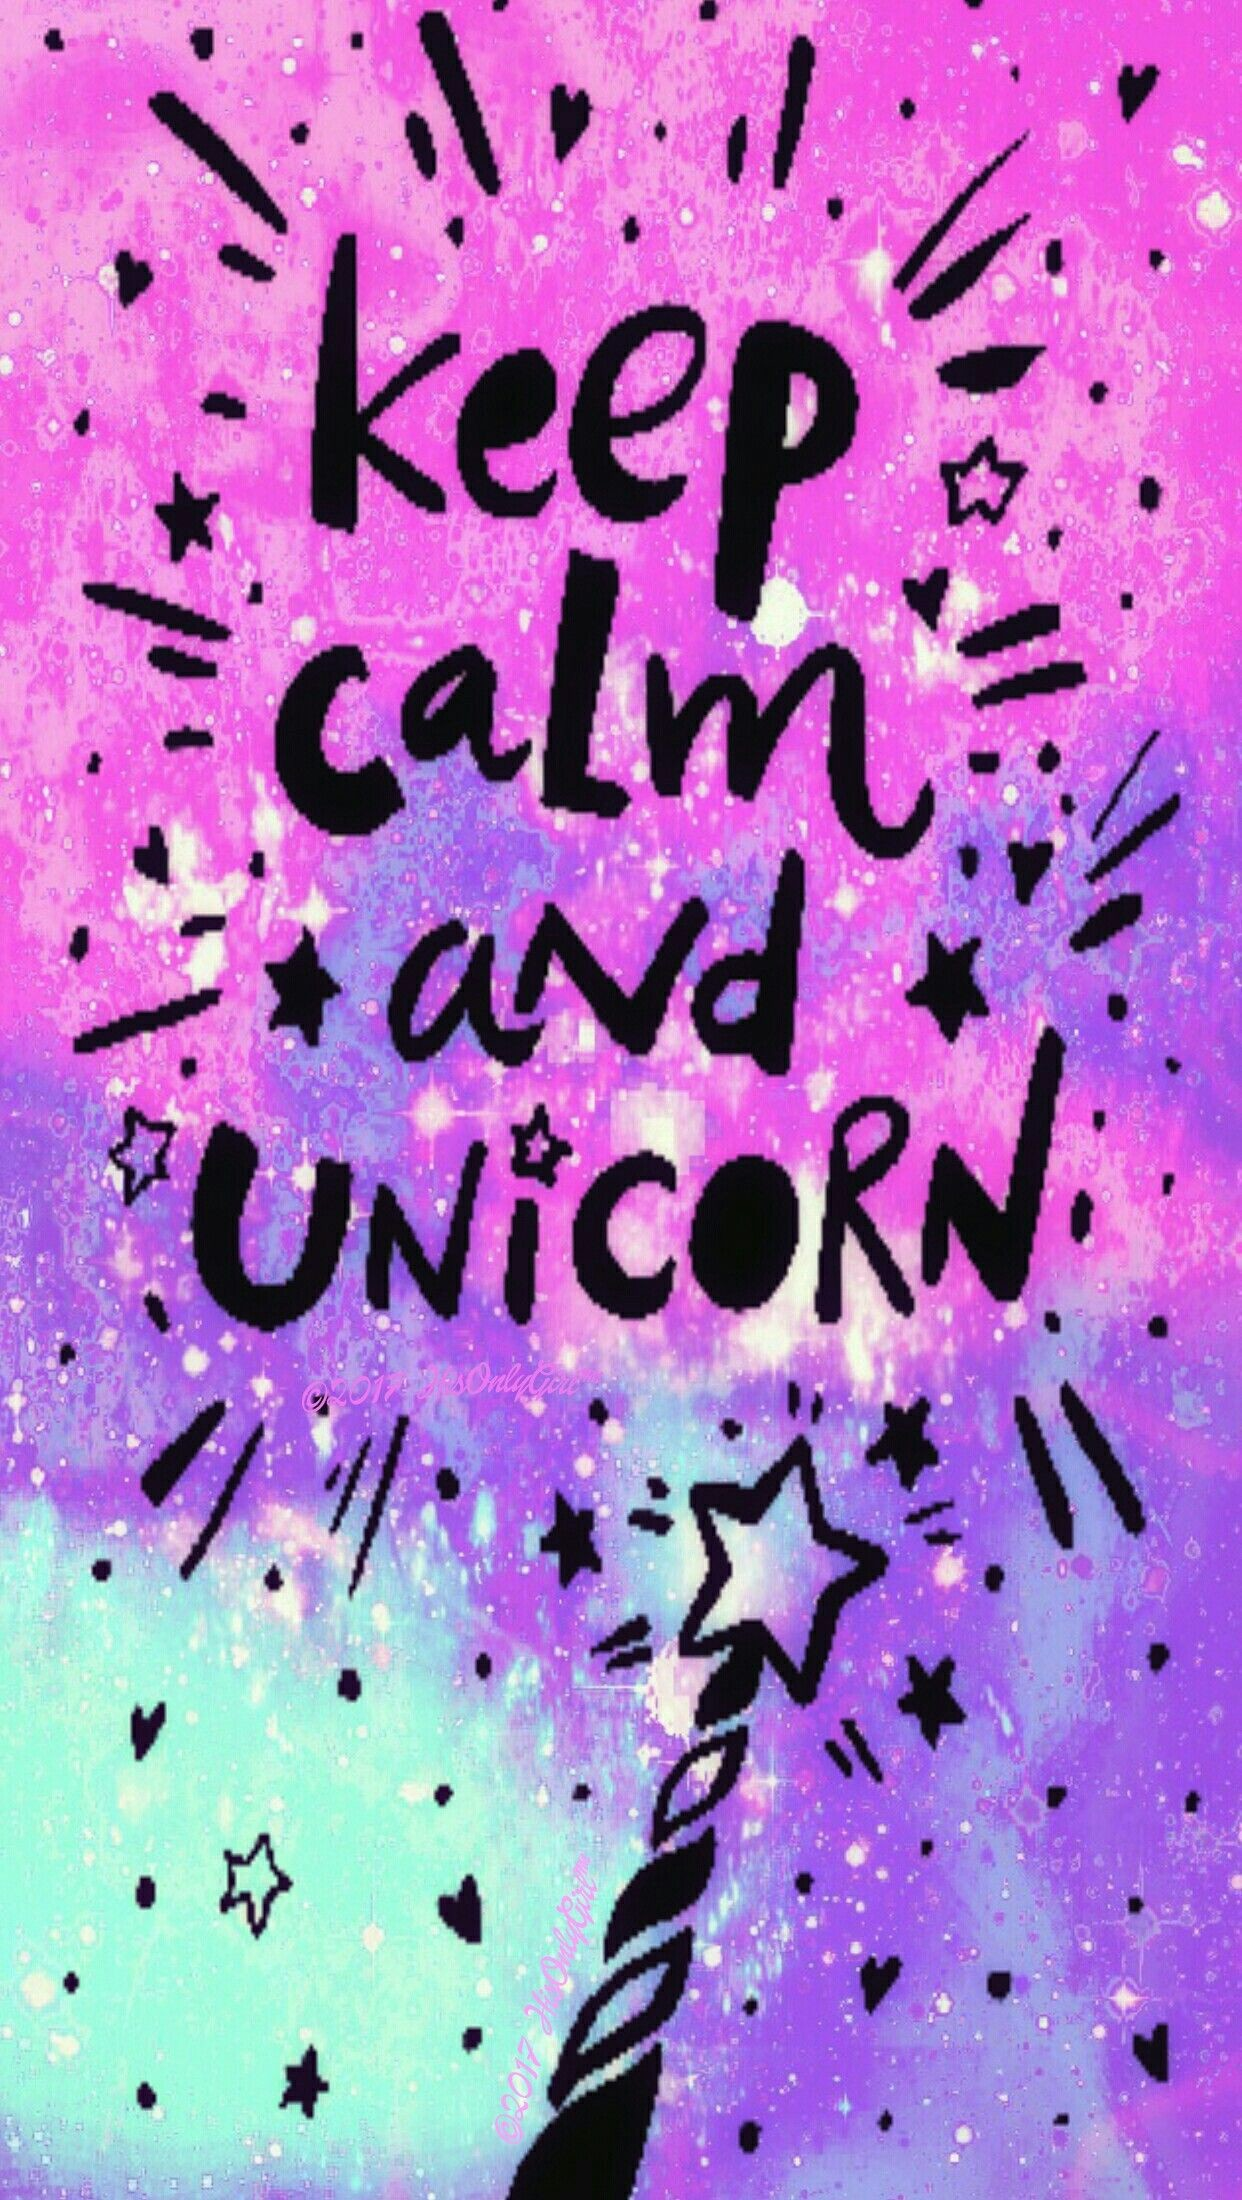 Res: 1242x2200, Keep calm Unicorn galaxy wallpaper I created for the app CocoPPa.